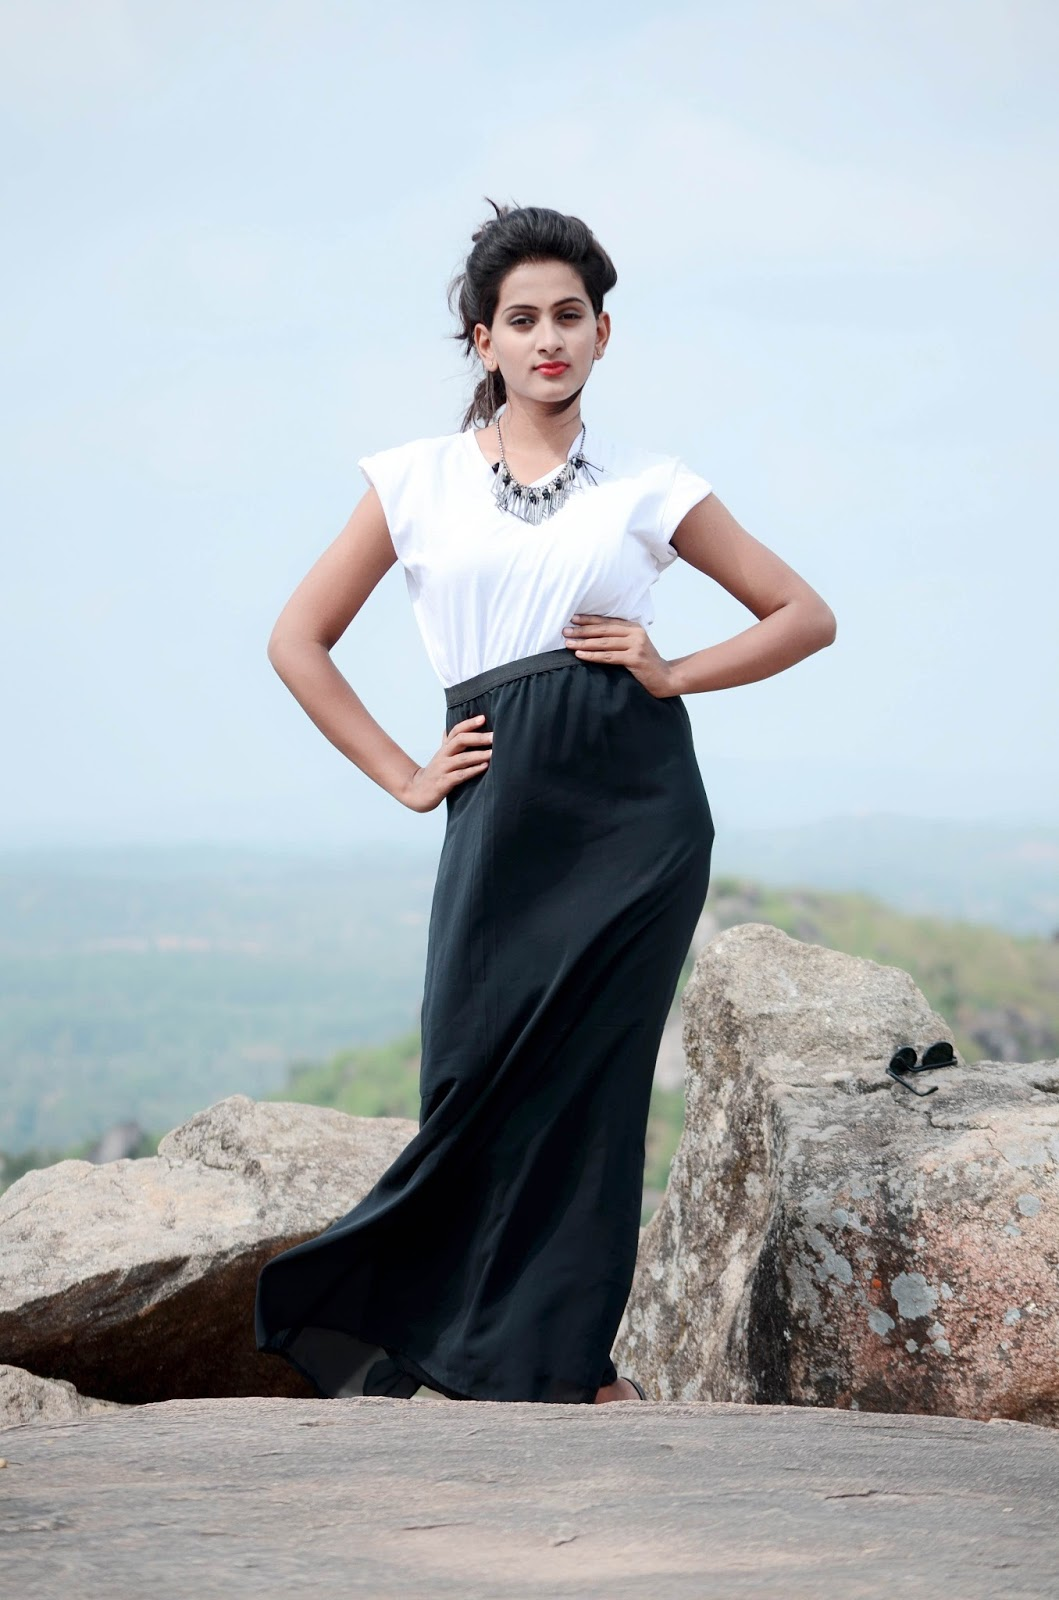 how to style a white tshirt, different styles of tshirt, white tshirt with the skirt, black skirt and white tshirt